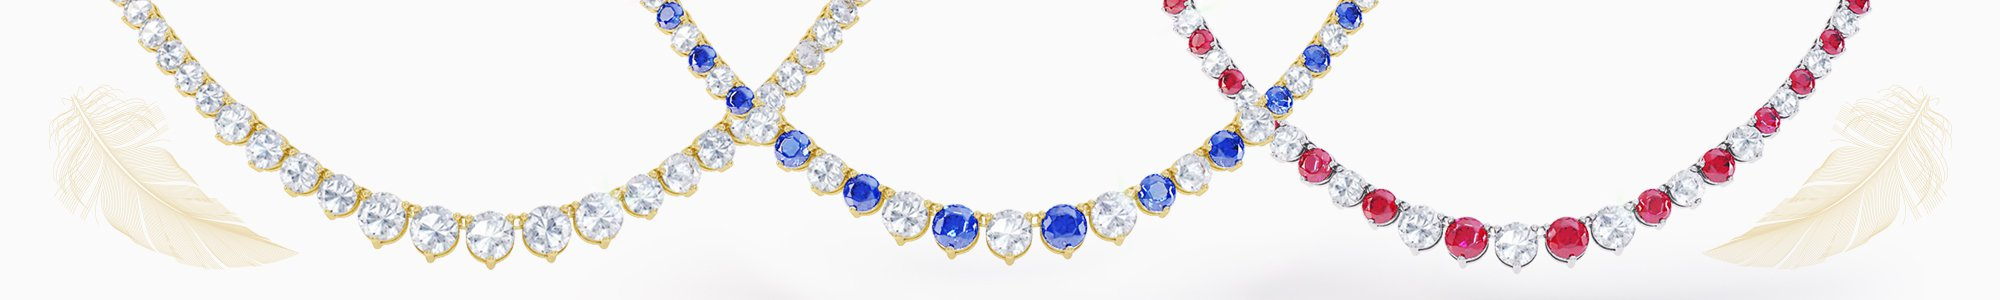 Stardust Collection - All Sapphire Jewelry